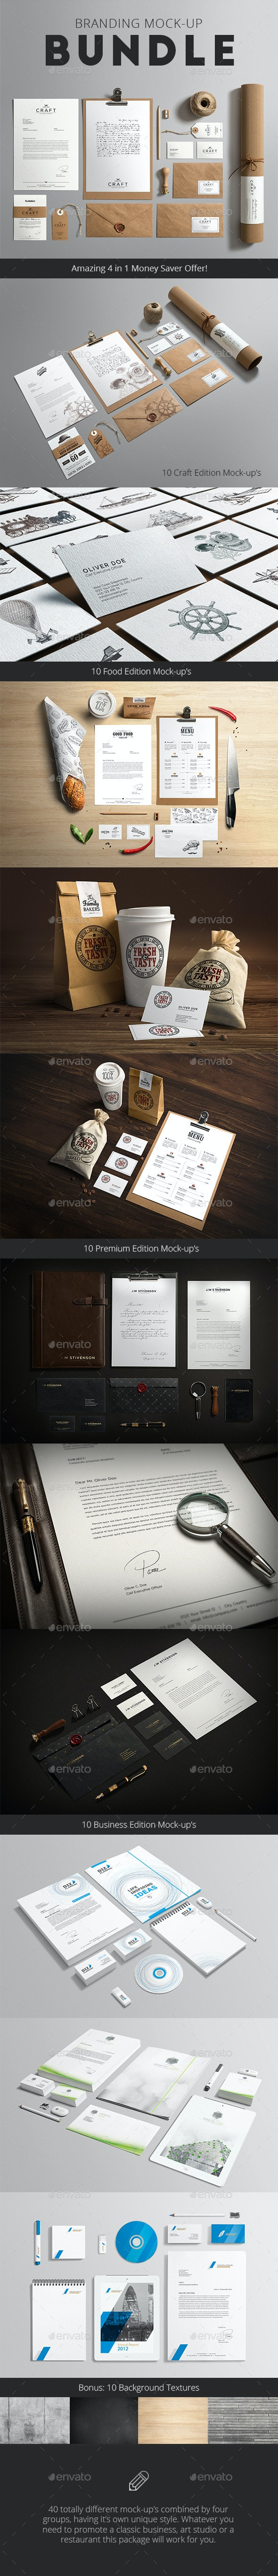 Stationery / Branding Mock-Up Bundle - Stationery Print